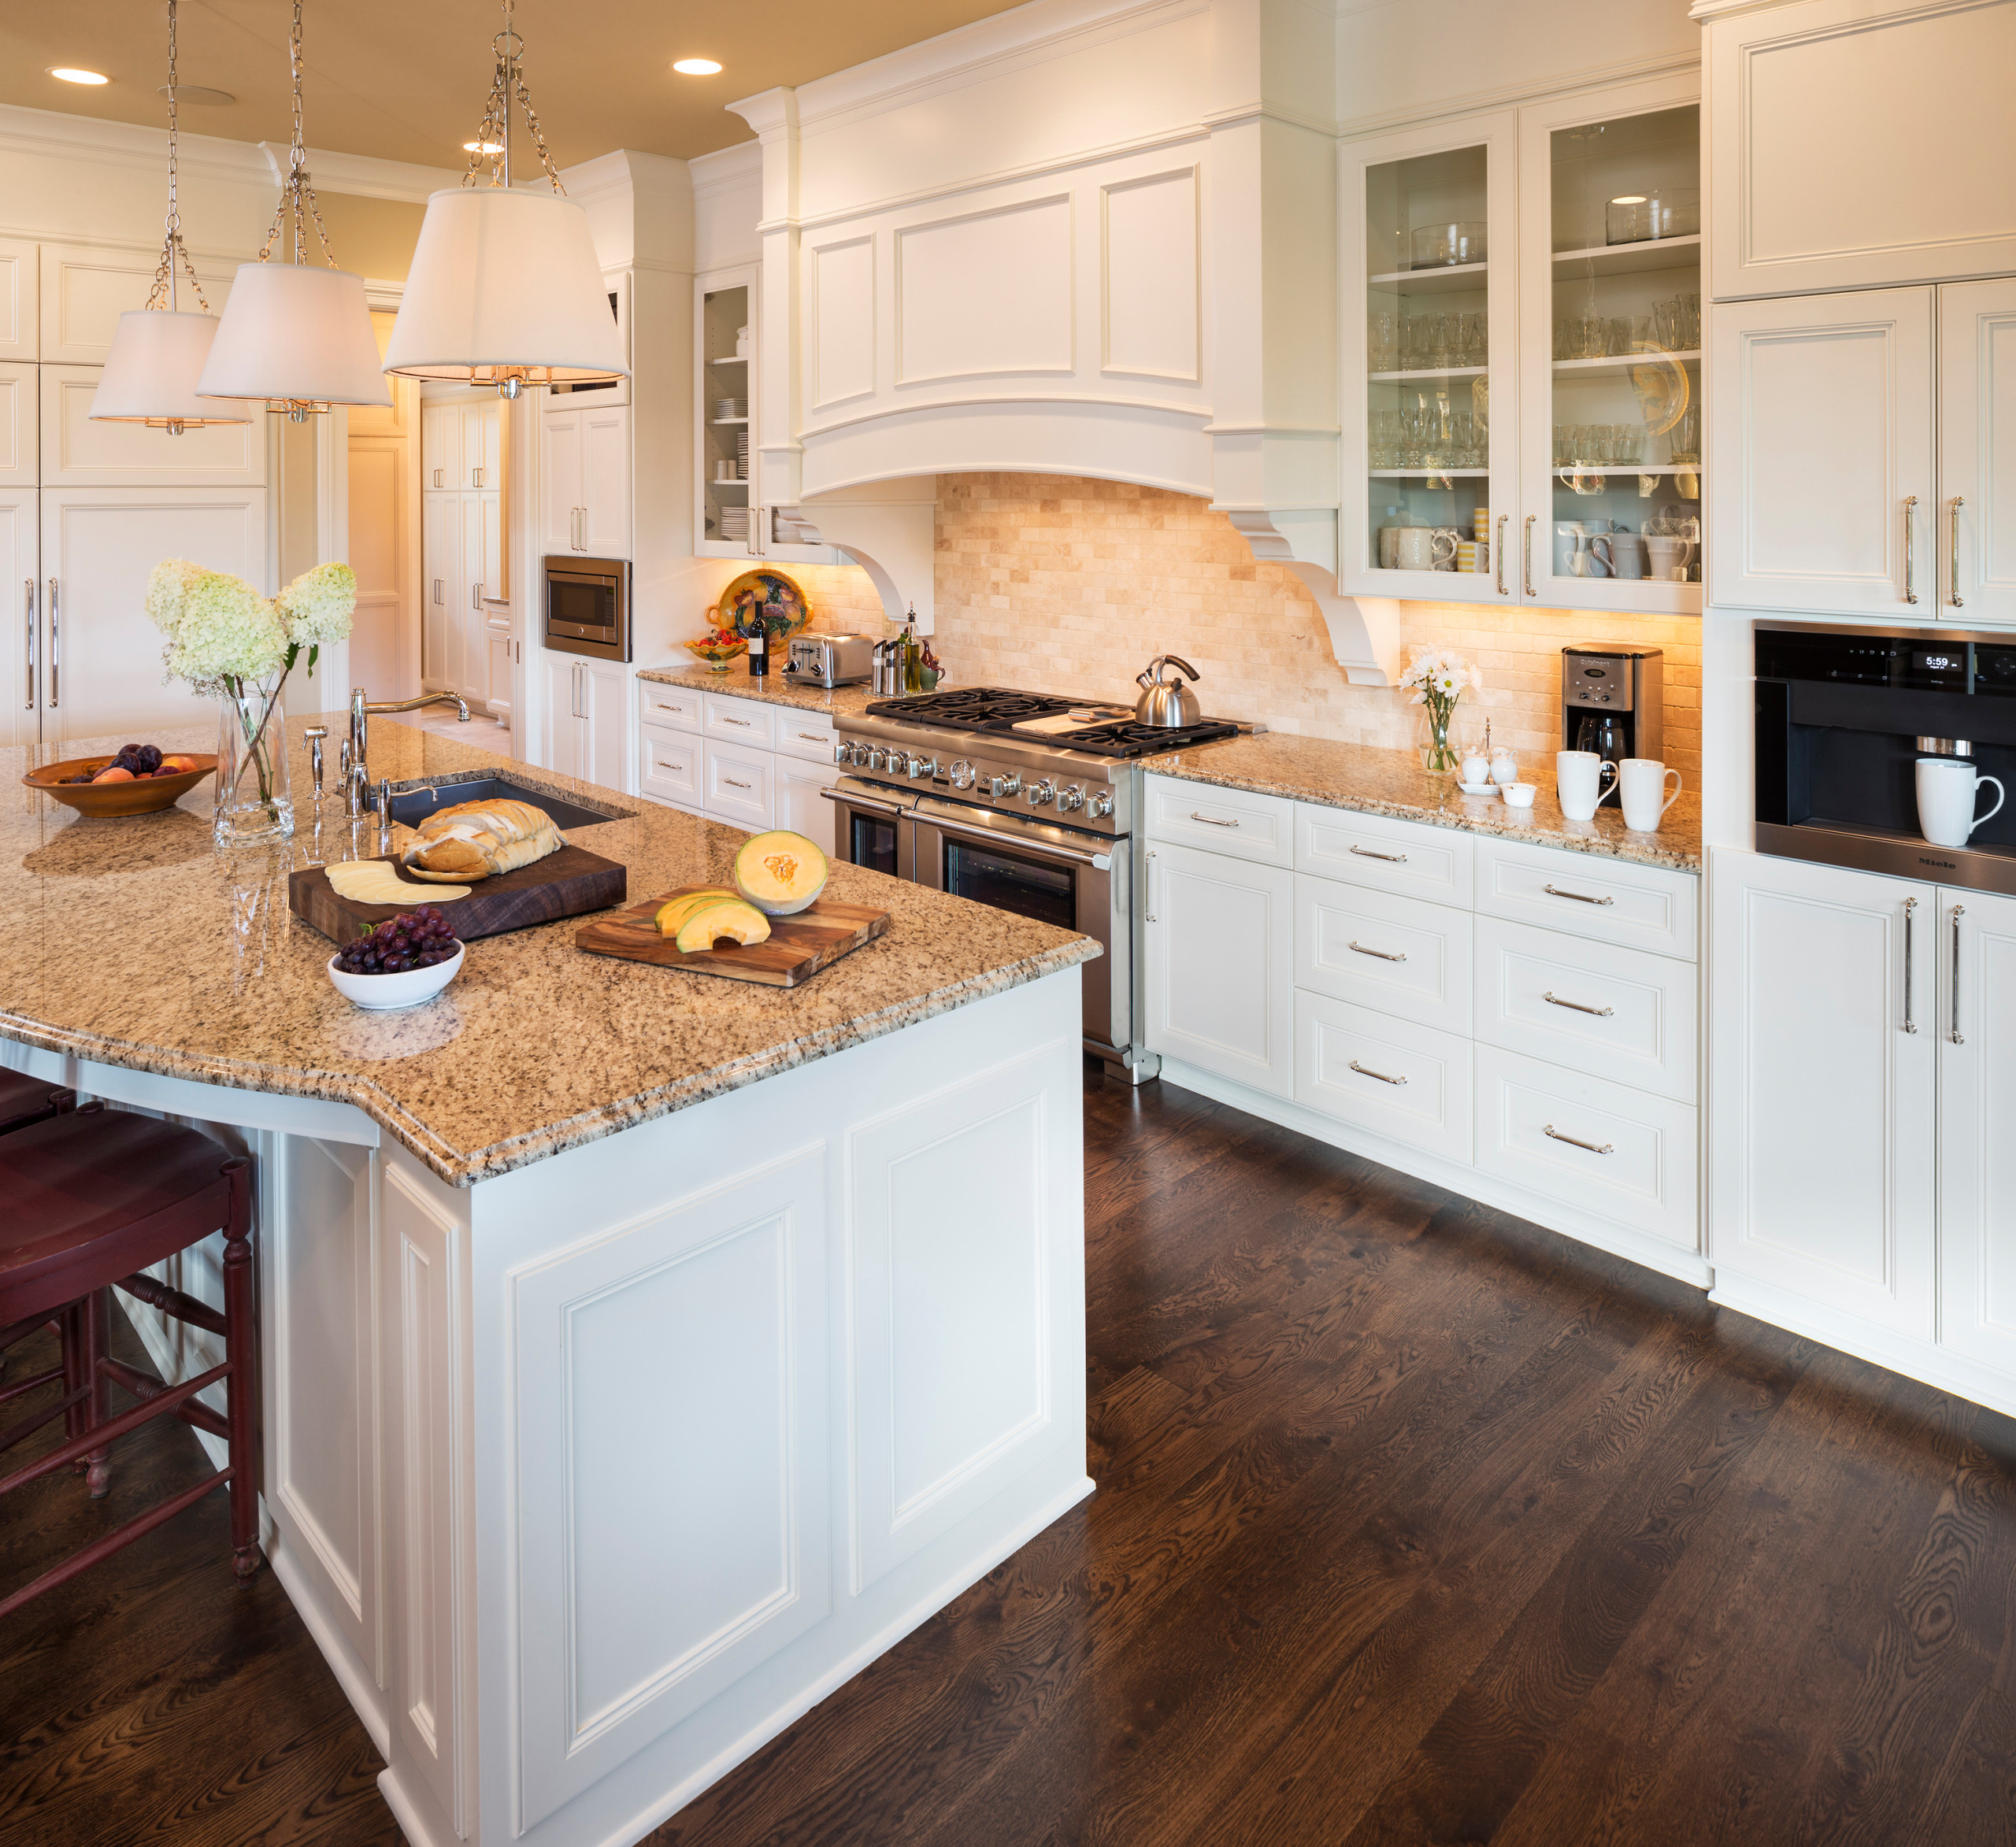 75 Beautiful Asian Kitchen With Stone Tile Backsplash Pictures Ideas October 2020 Houzz